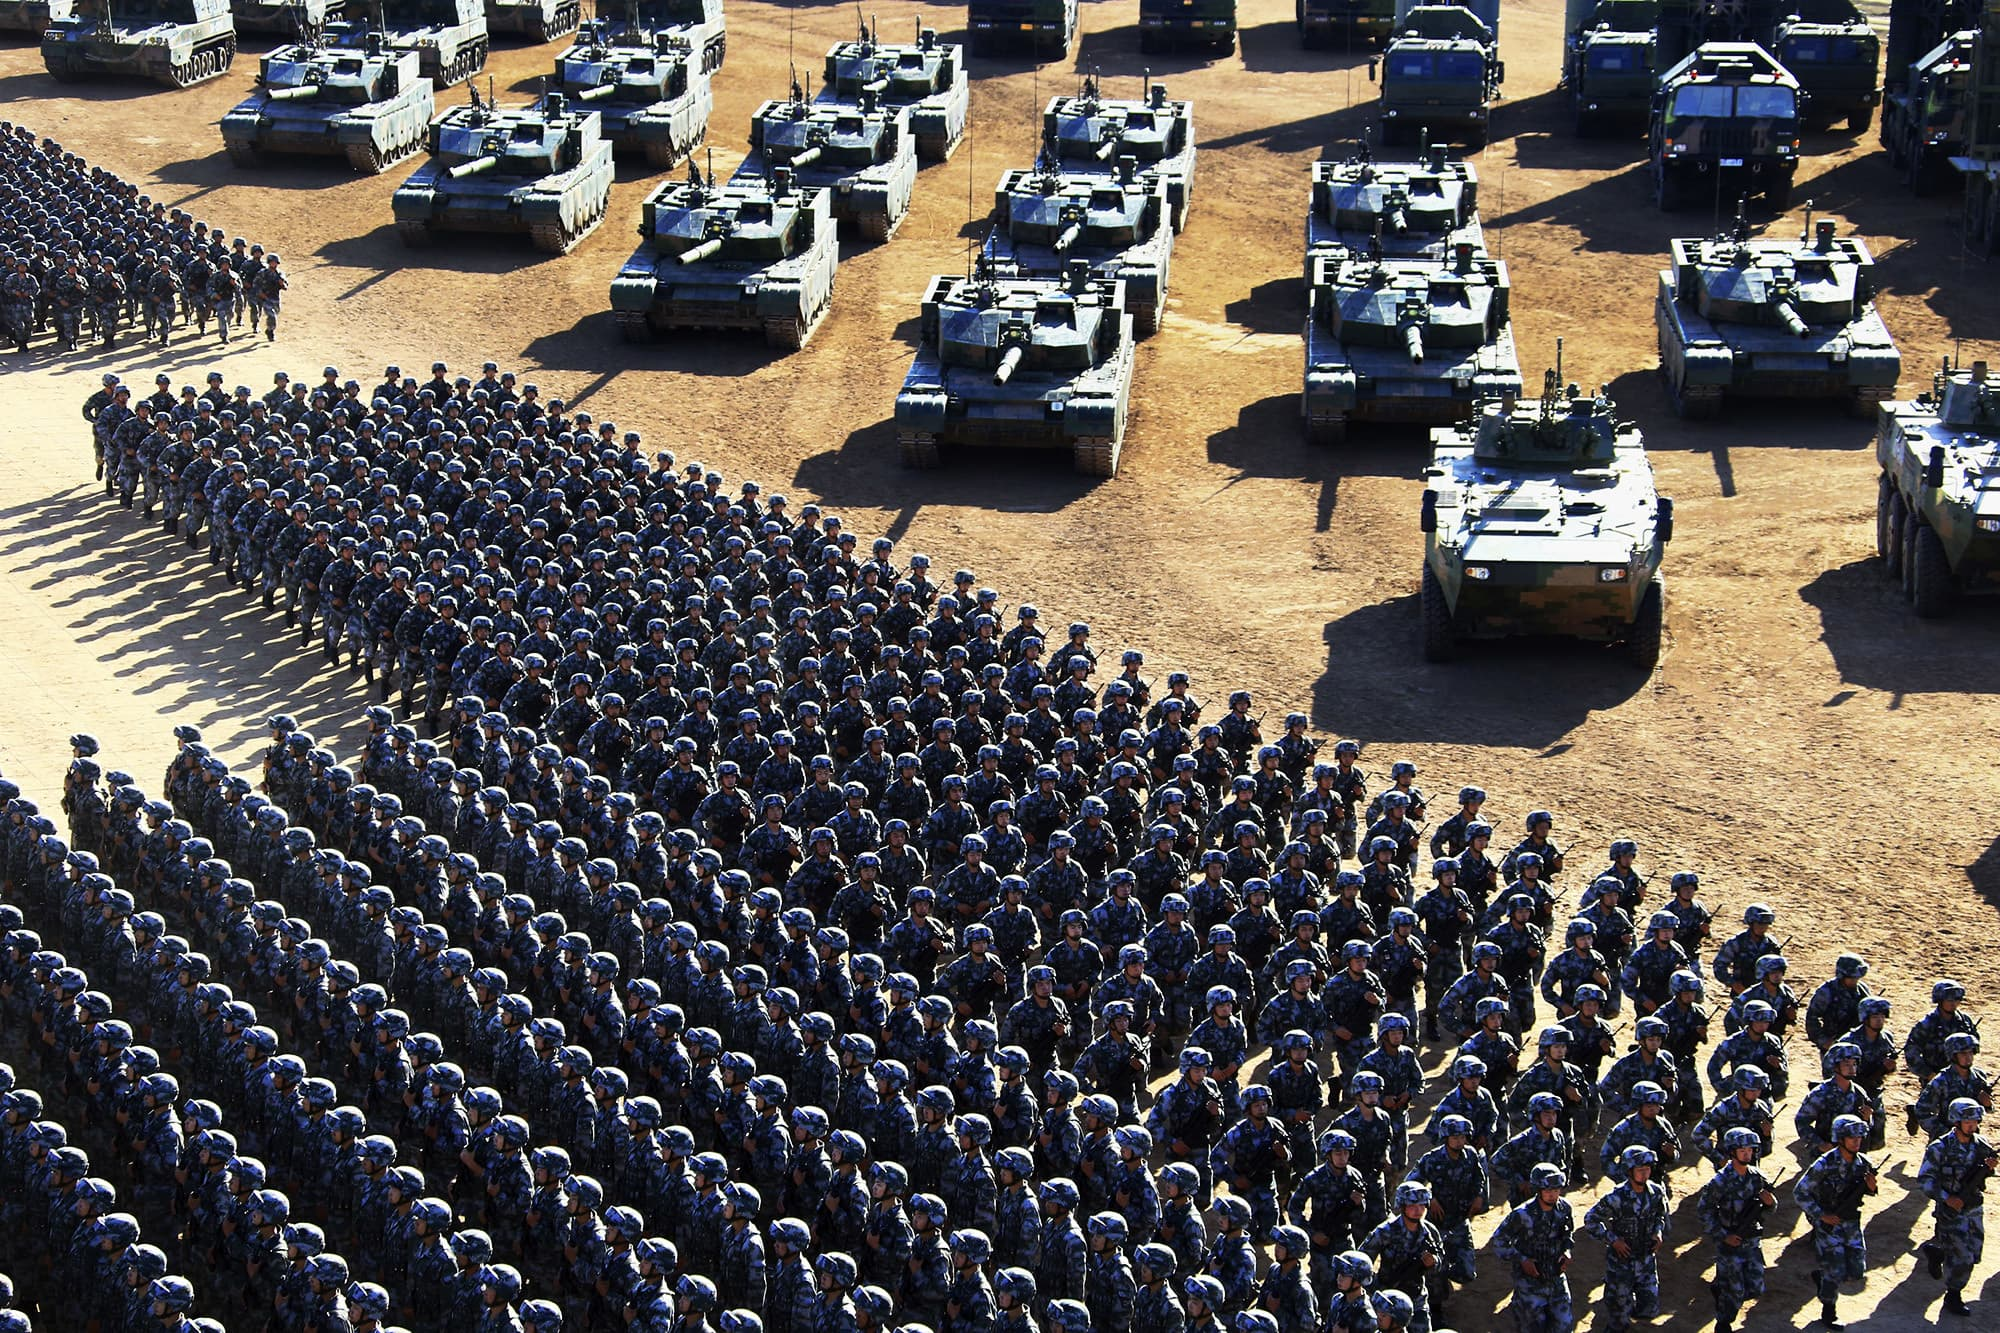 In pictures: China's 'world class' army holds military ...